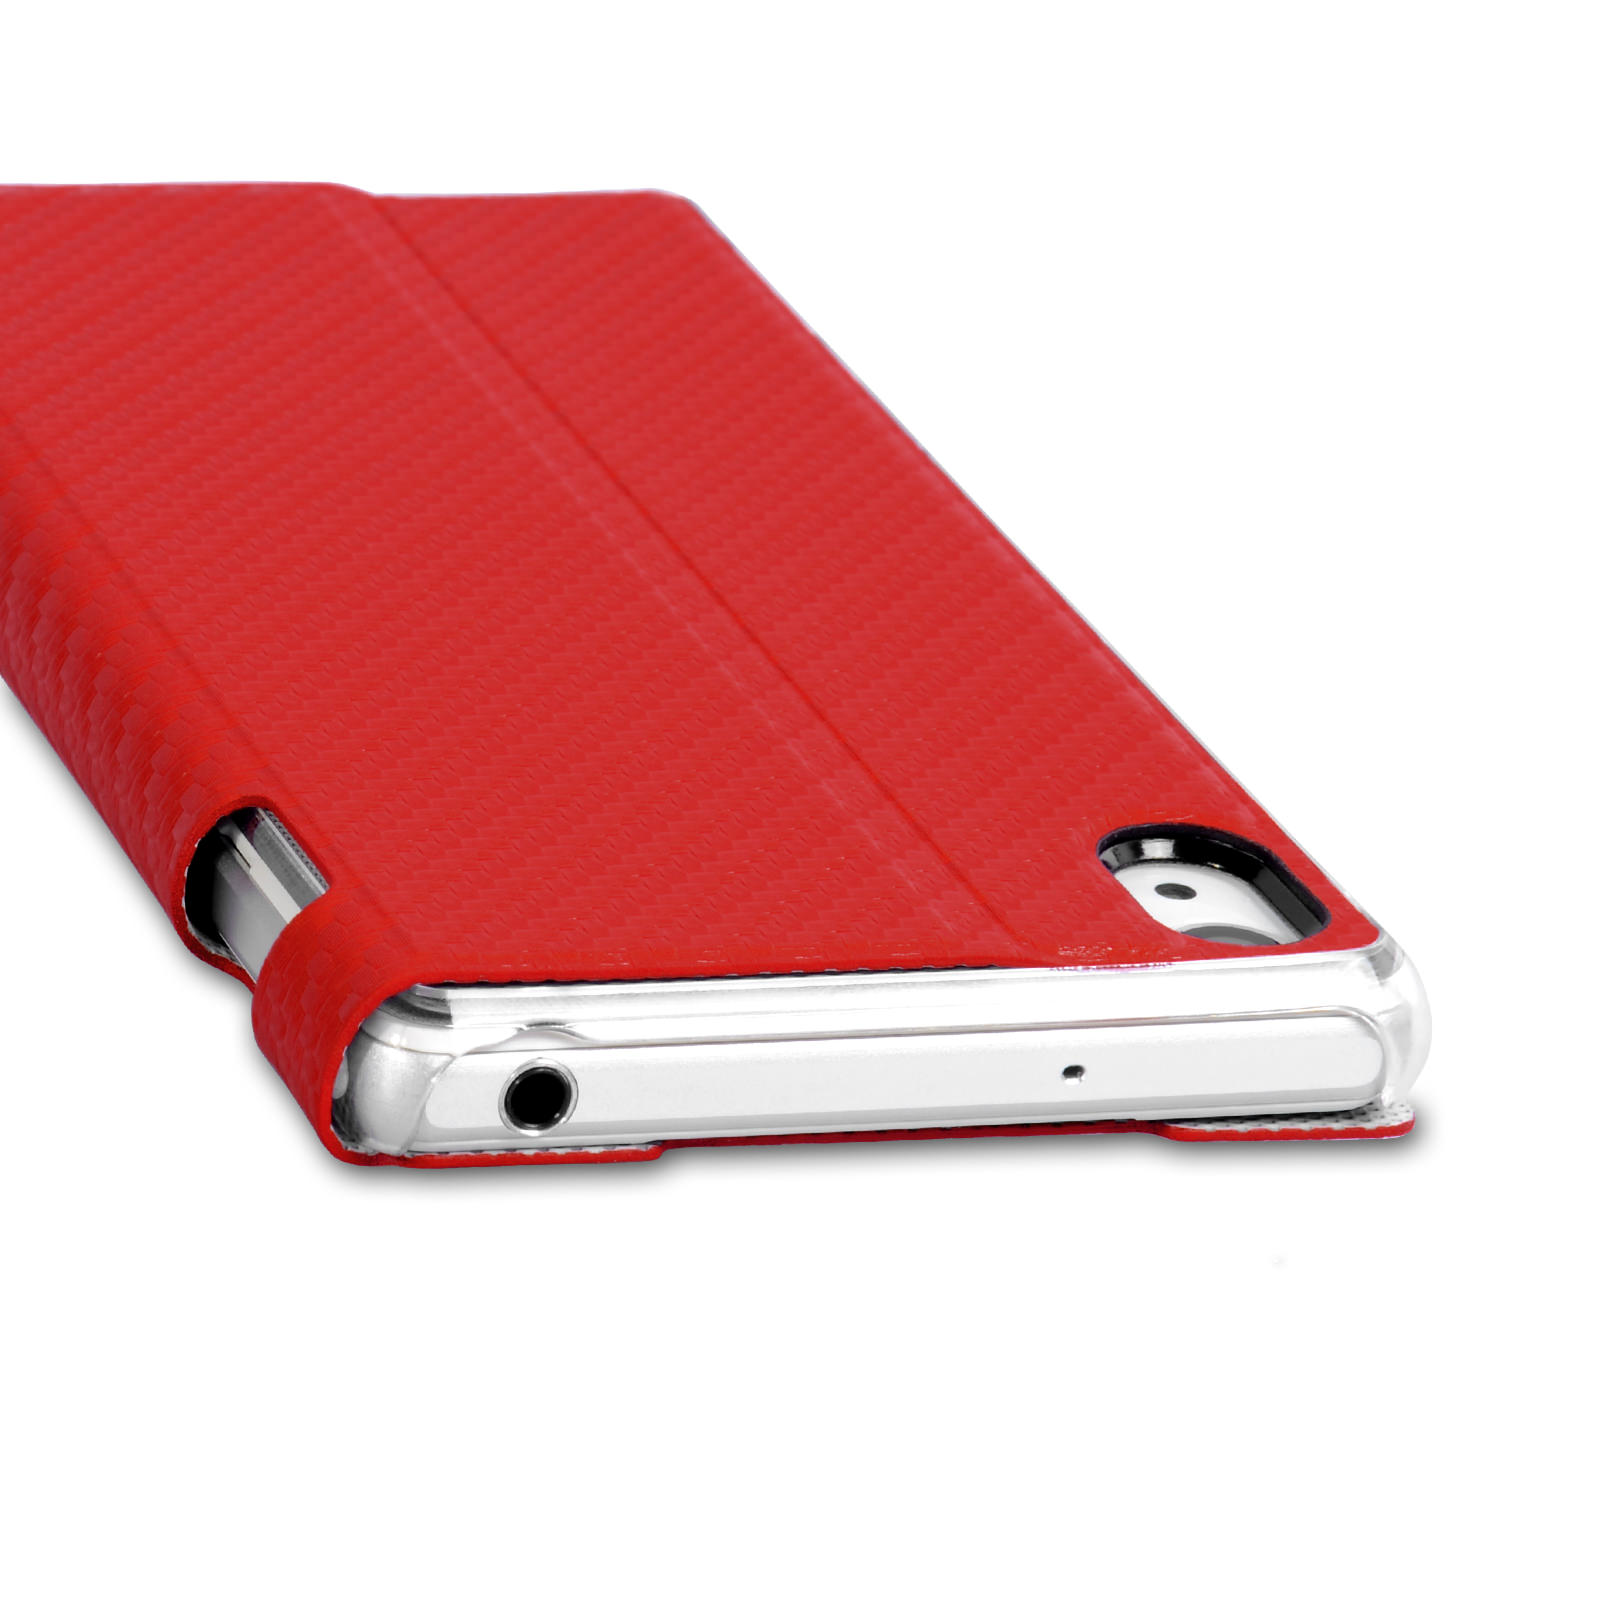 Roxfit Standing Book Case for Sony Xperia Z2 - Carbon Red